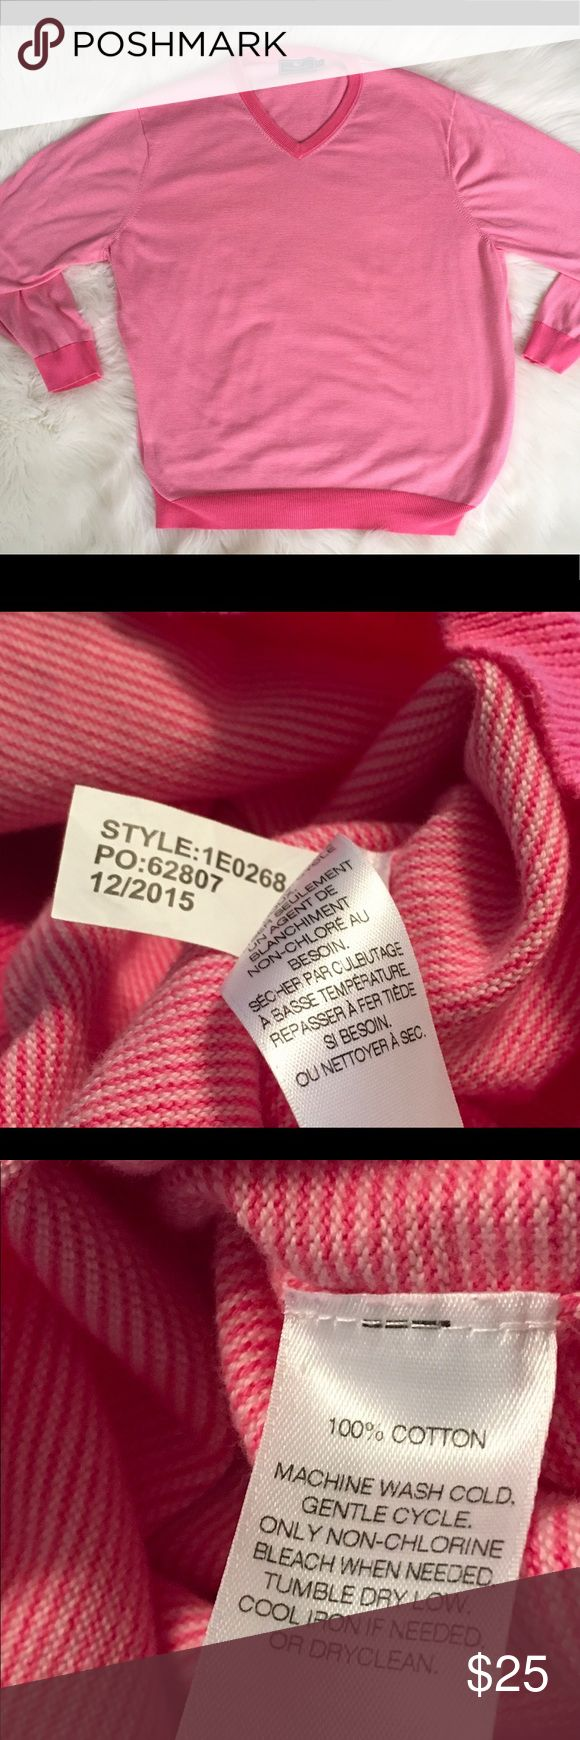 """Vineyard vines Men's 100% Condon Sweater SZ XL Vineyard Vines Men's 100% Cotton Sweater Size XL Extra Large  Pink & White Subtle Stripes Cuffs, Neckline & Hem Pink Arm Pit to Arm Pit 27"""" laying flat  Total Length 30"""" Gently used  Clean and Smoke Free Home Vineyard Vines Sweaters V-Neck"""